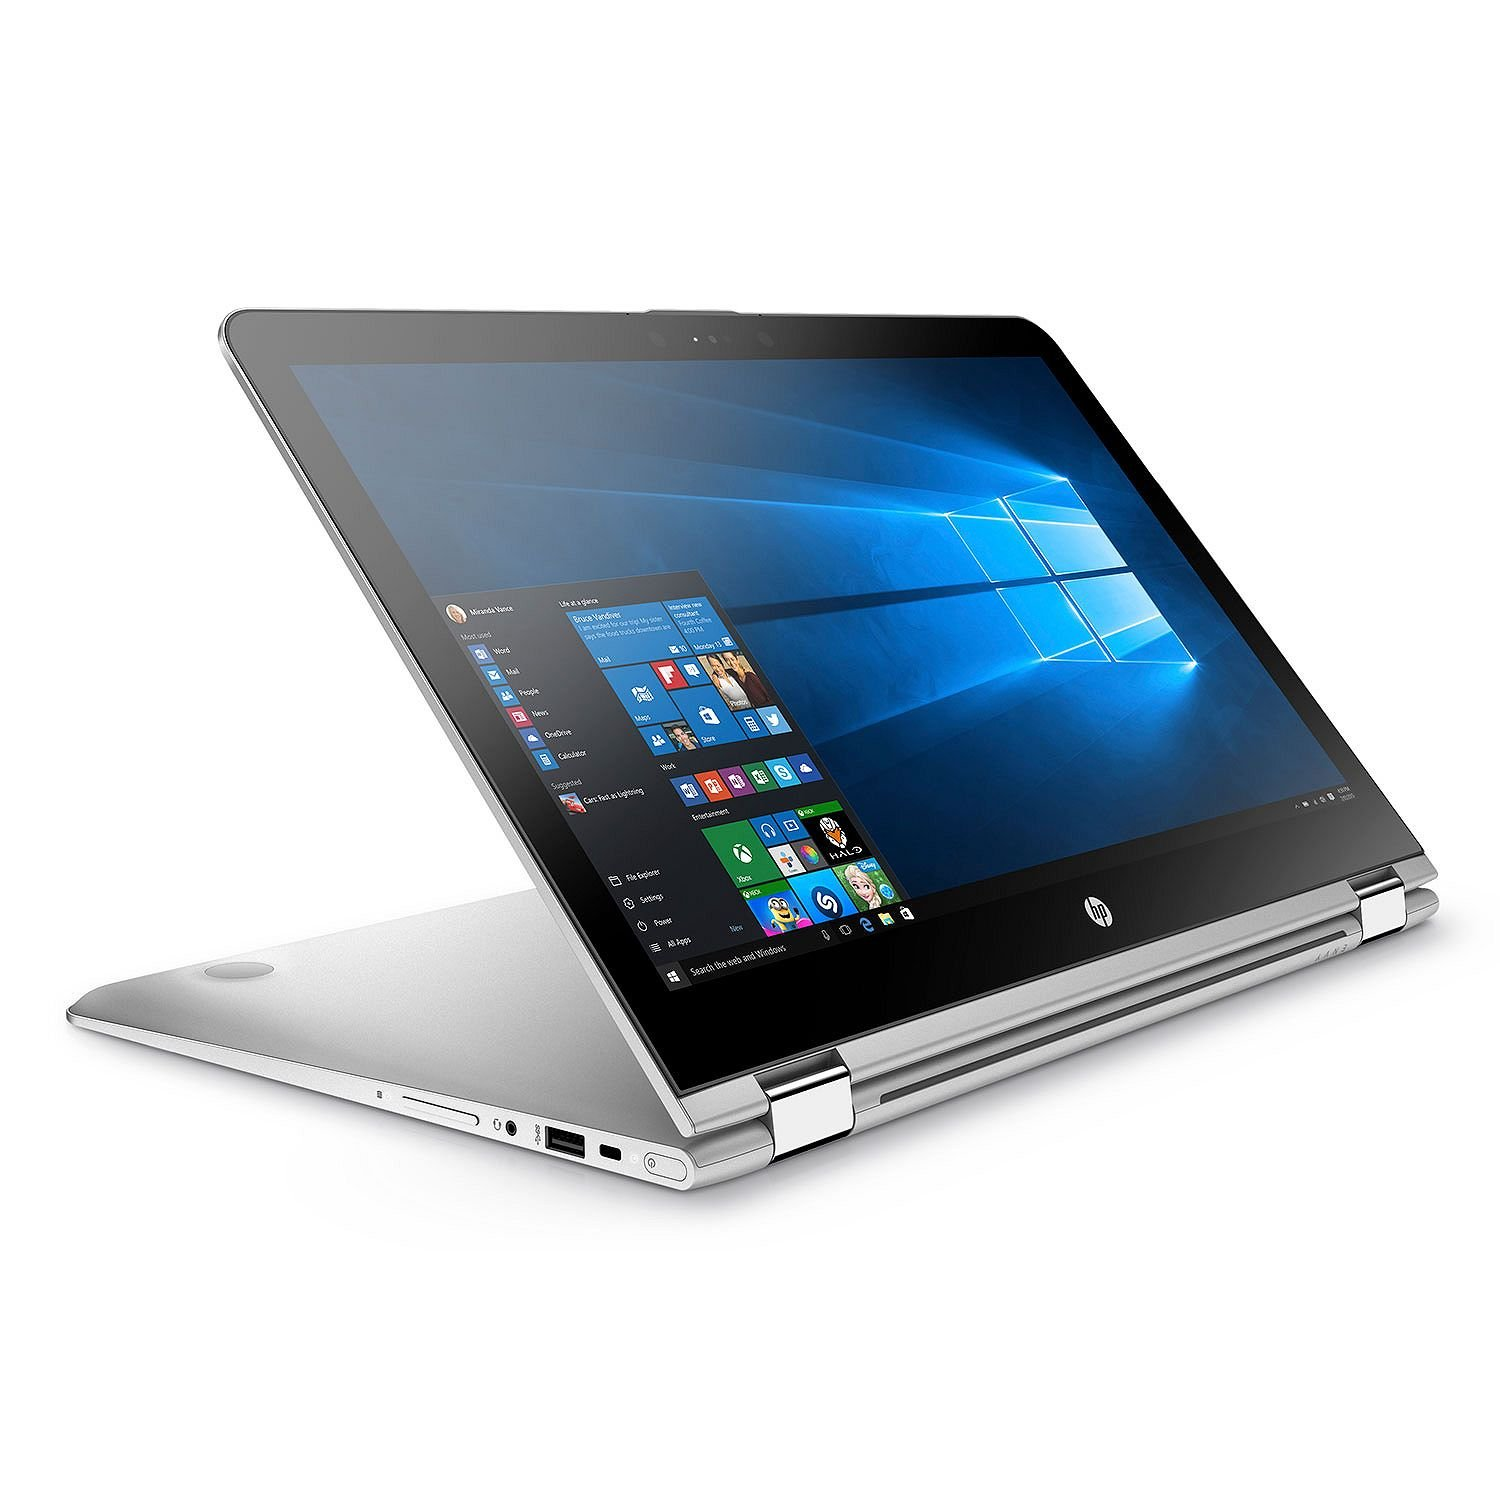 Newest Flagship HP Envy x360 15.6'' 2-in-1 Convertible Full HD IPS Touchscreen Business Laptop / Tablet - Intel Quad-Core i7-8550U up to 4GHz 16GB DDR4 1TB HDD Backlit Keyboard B&O Play Win 10